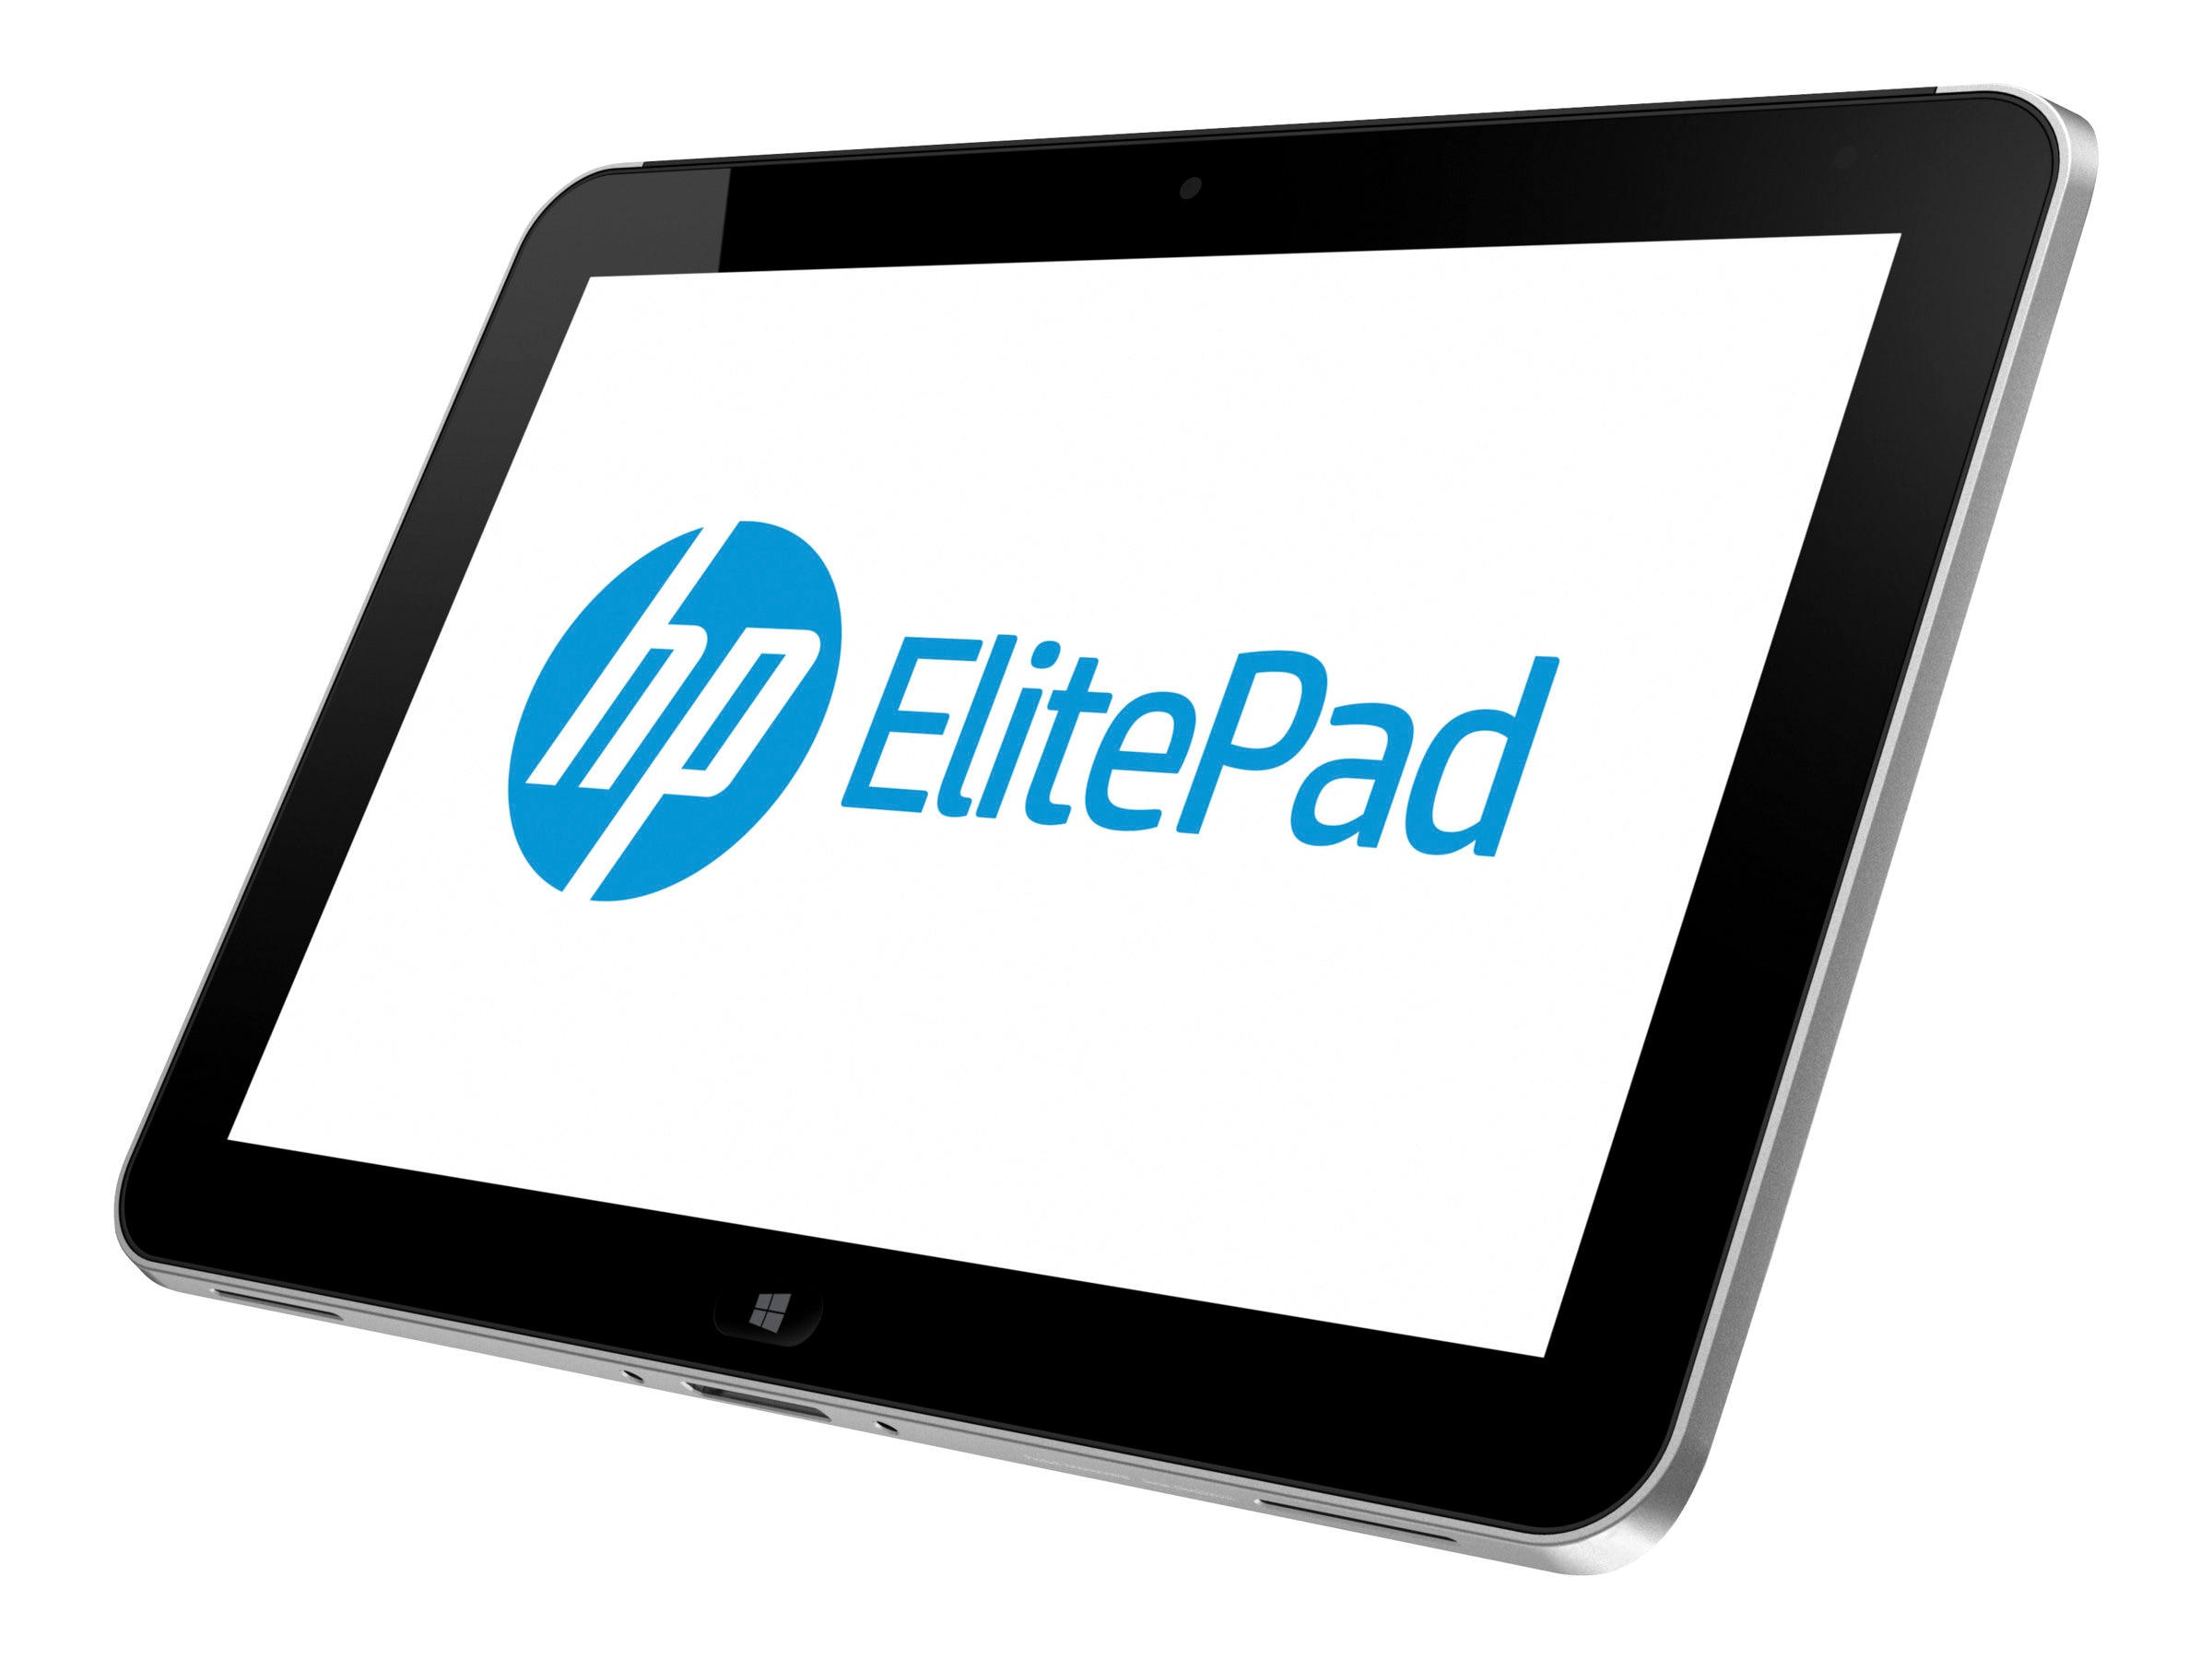 HP ElitePad 900 1.8GHz processor Windows 8 Professional, D4T22AA#ABA, 15226053, Tablets